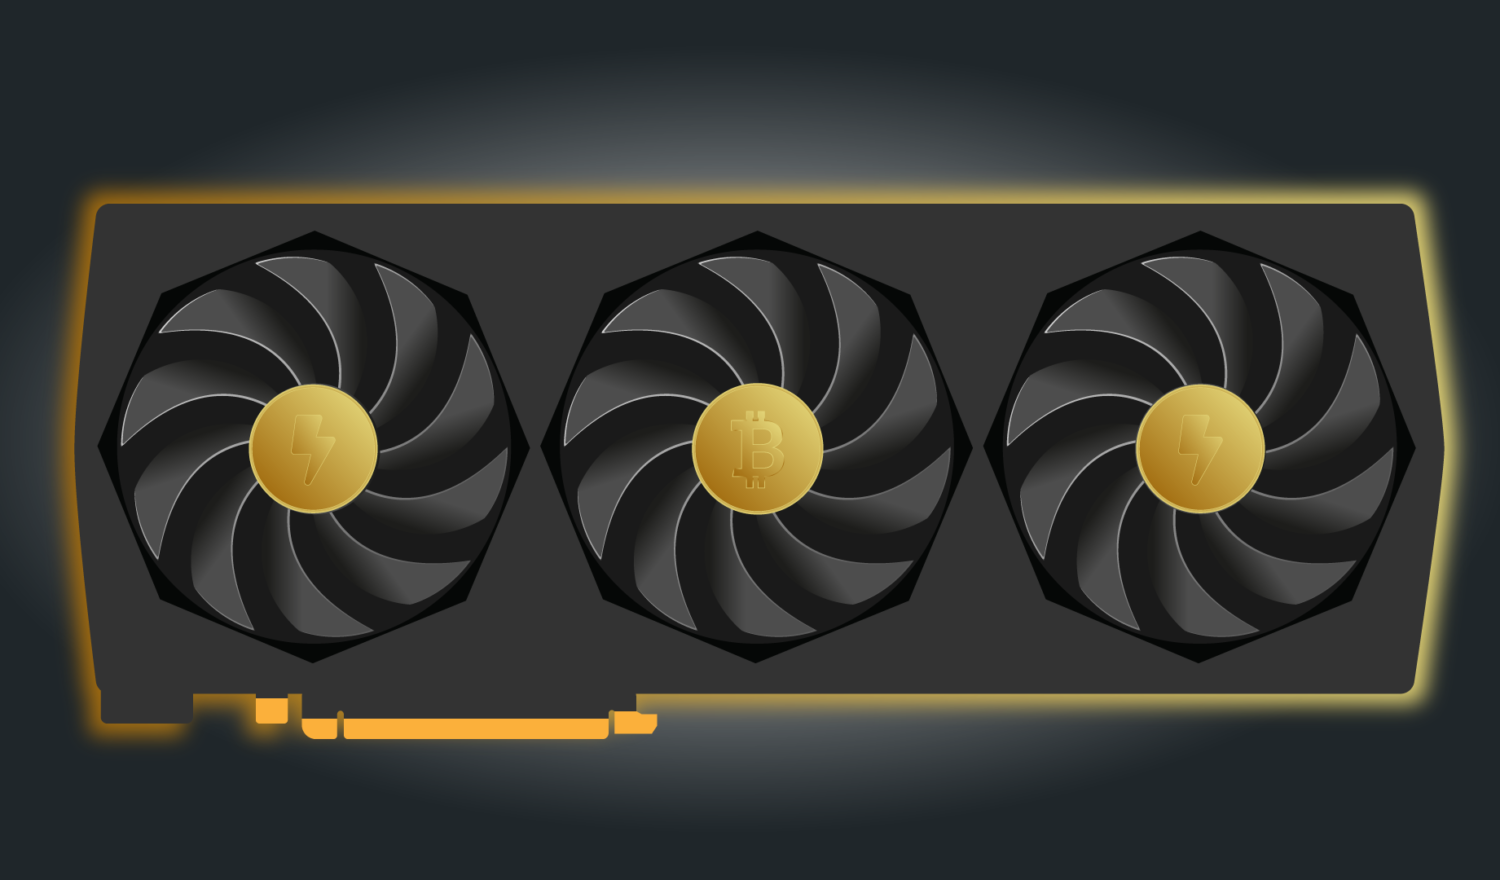 A GPU with Bitcoin and energy icons on its fans